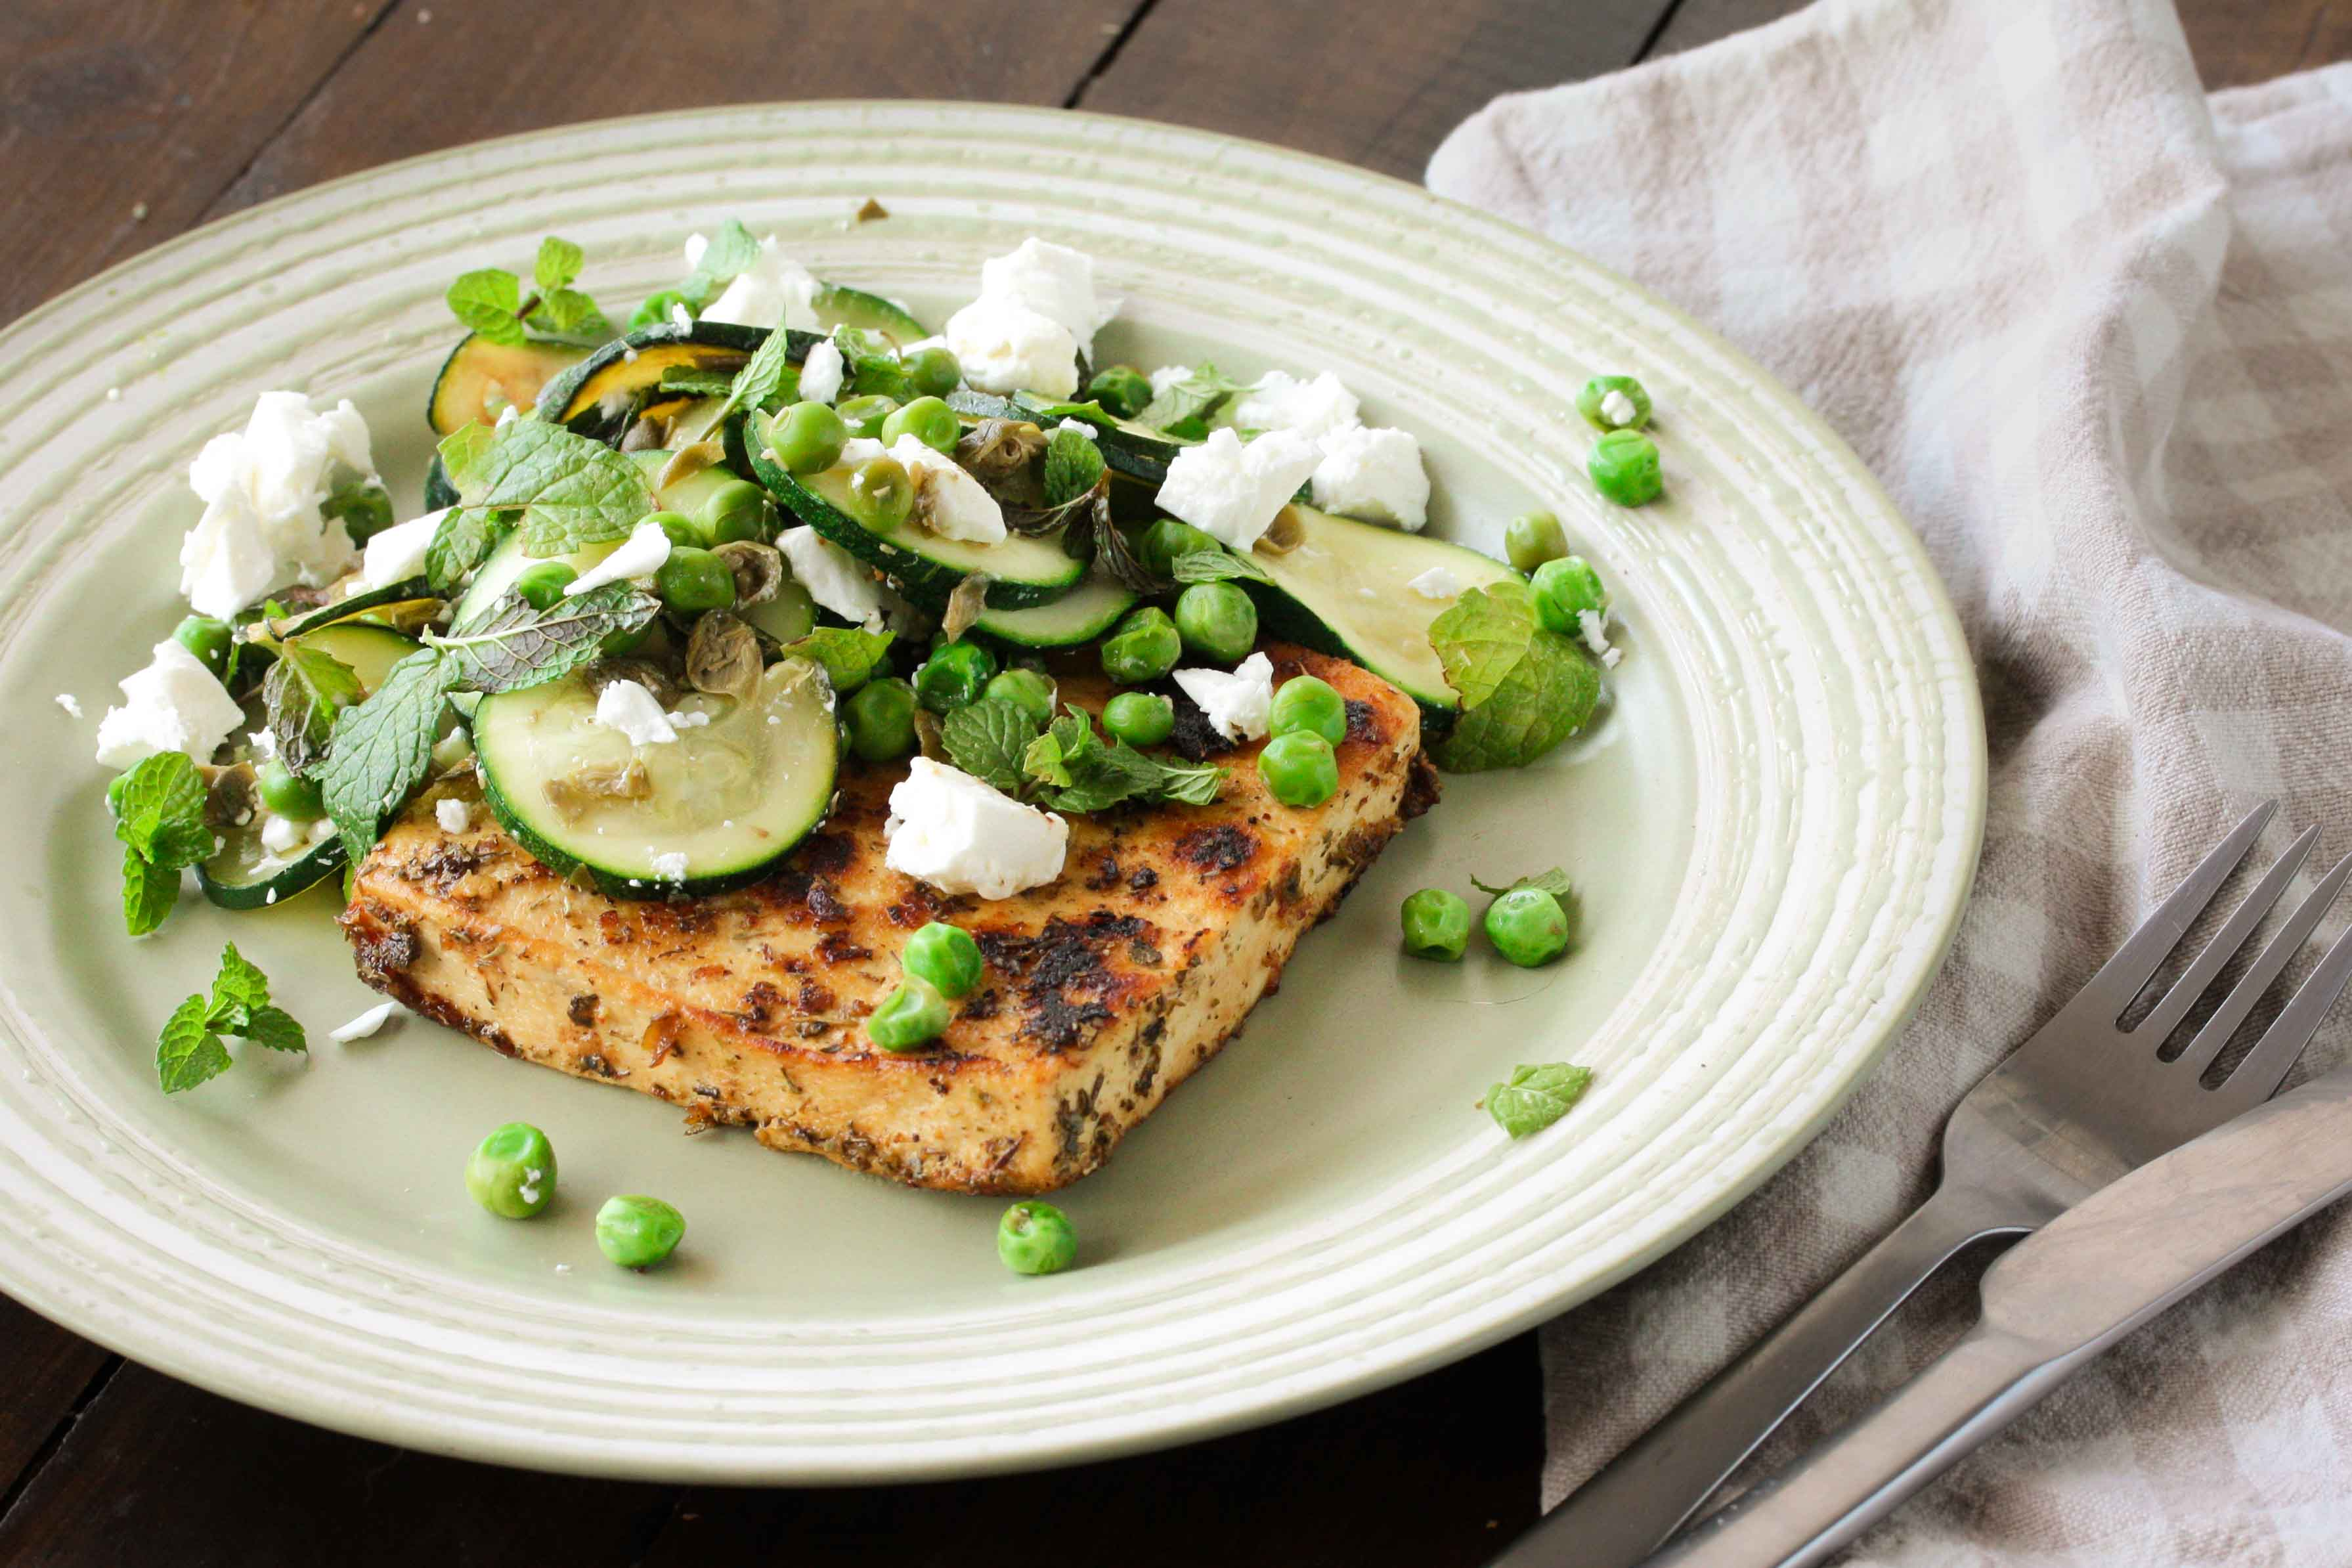 Lemon and herb tofu steak with warm zucchini, pea and mint salad